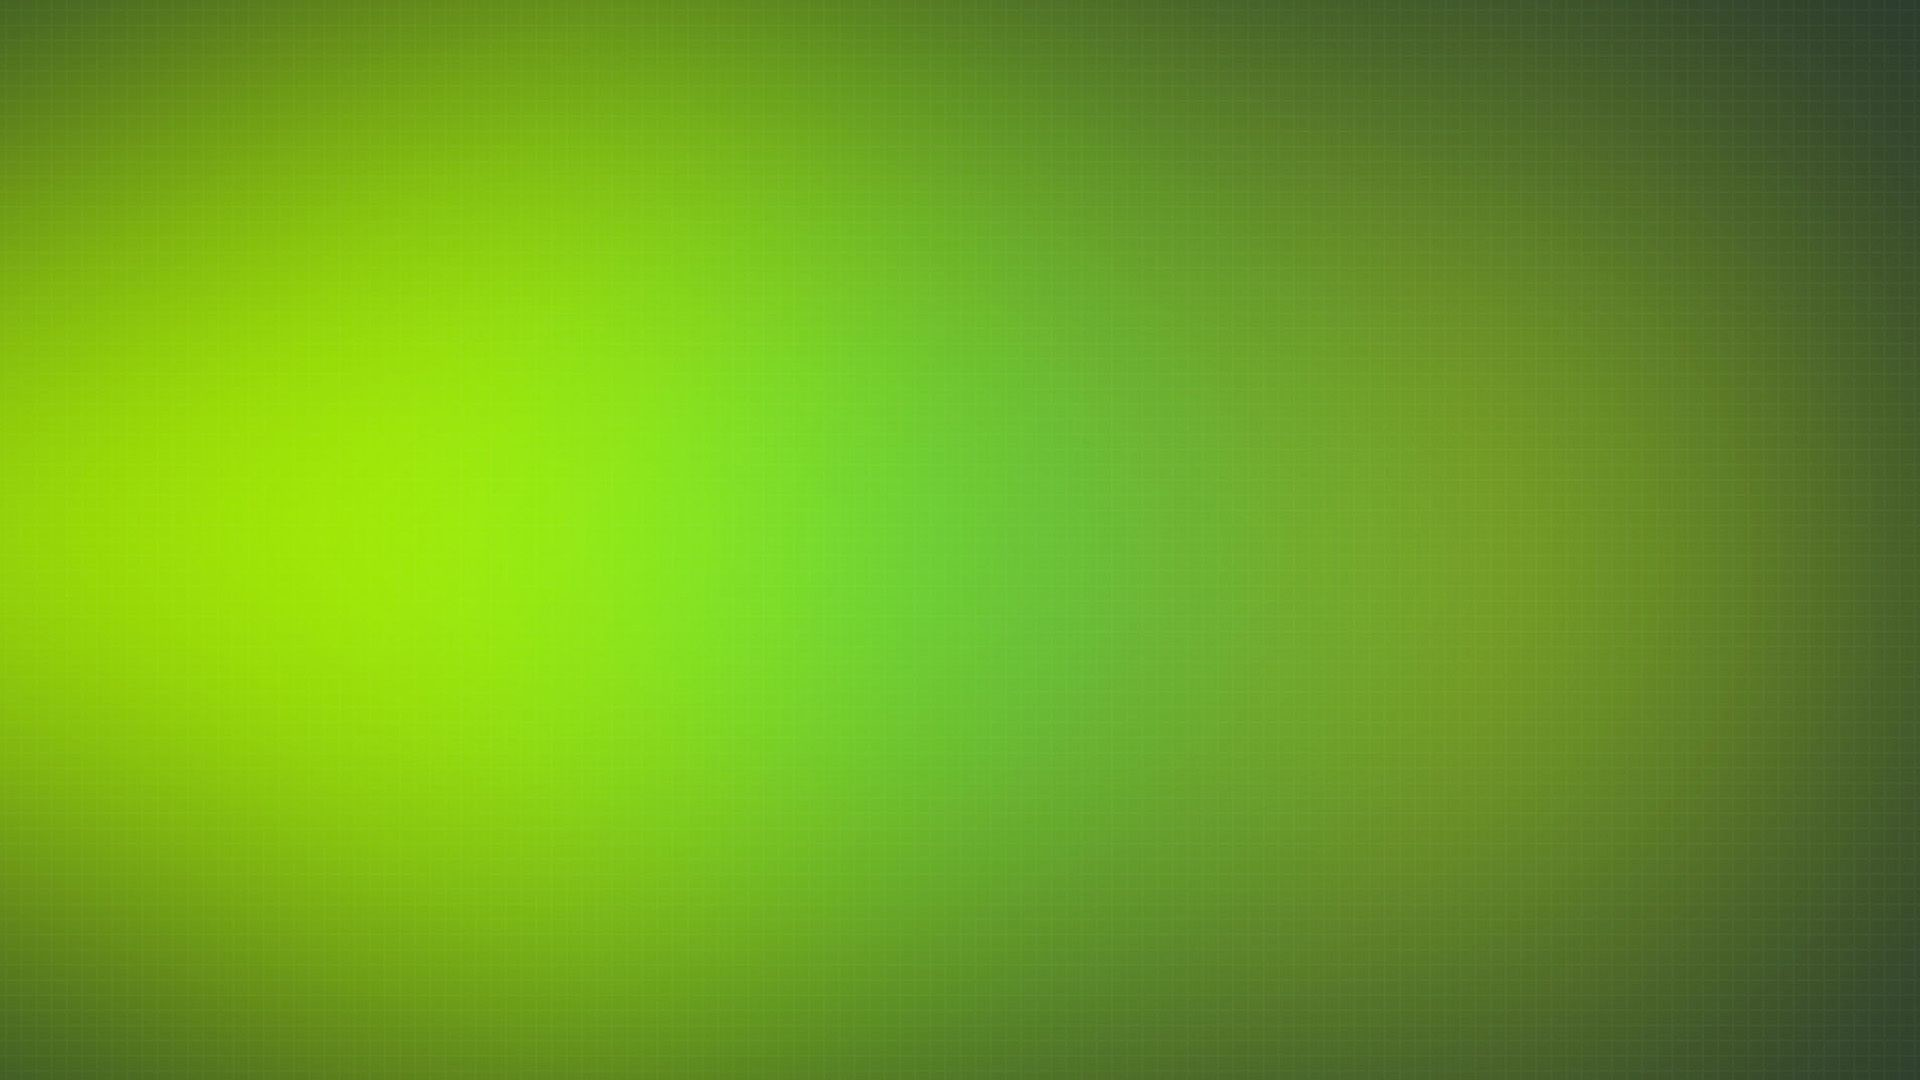 1920x1080 Green gradient background wallpaper